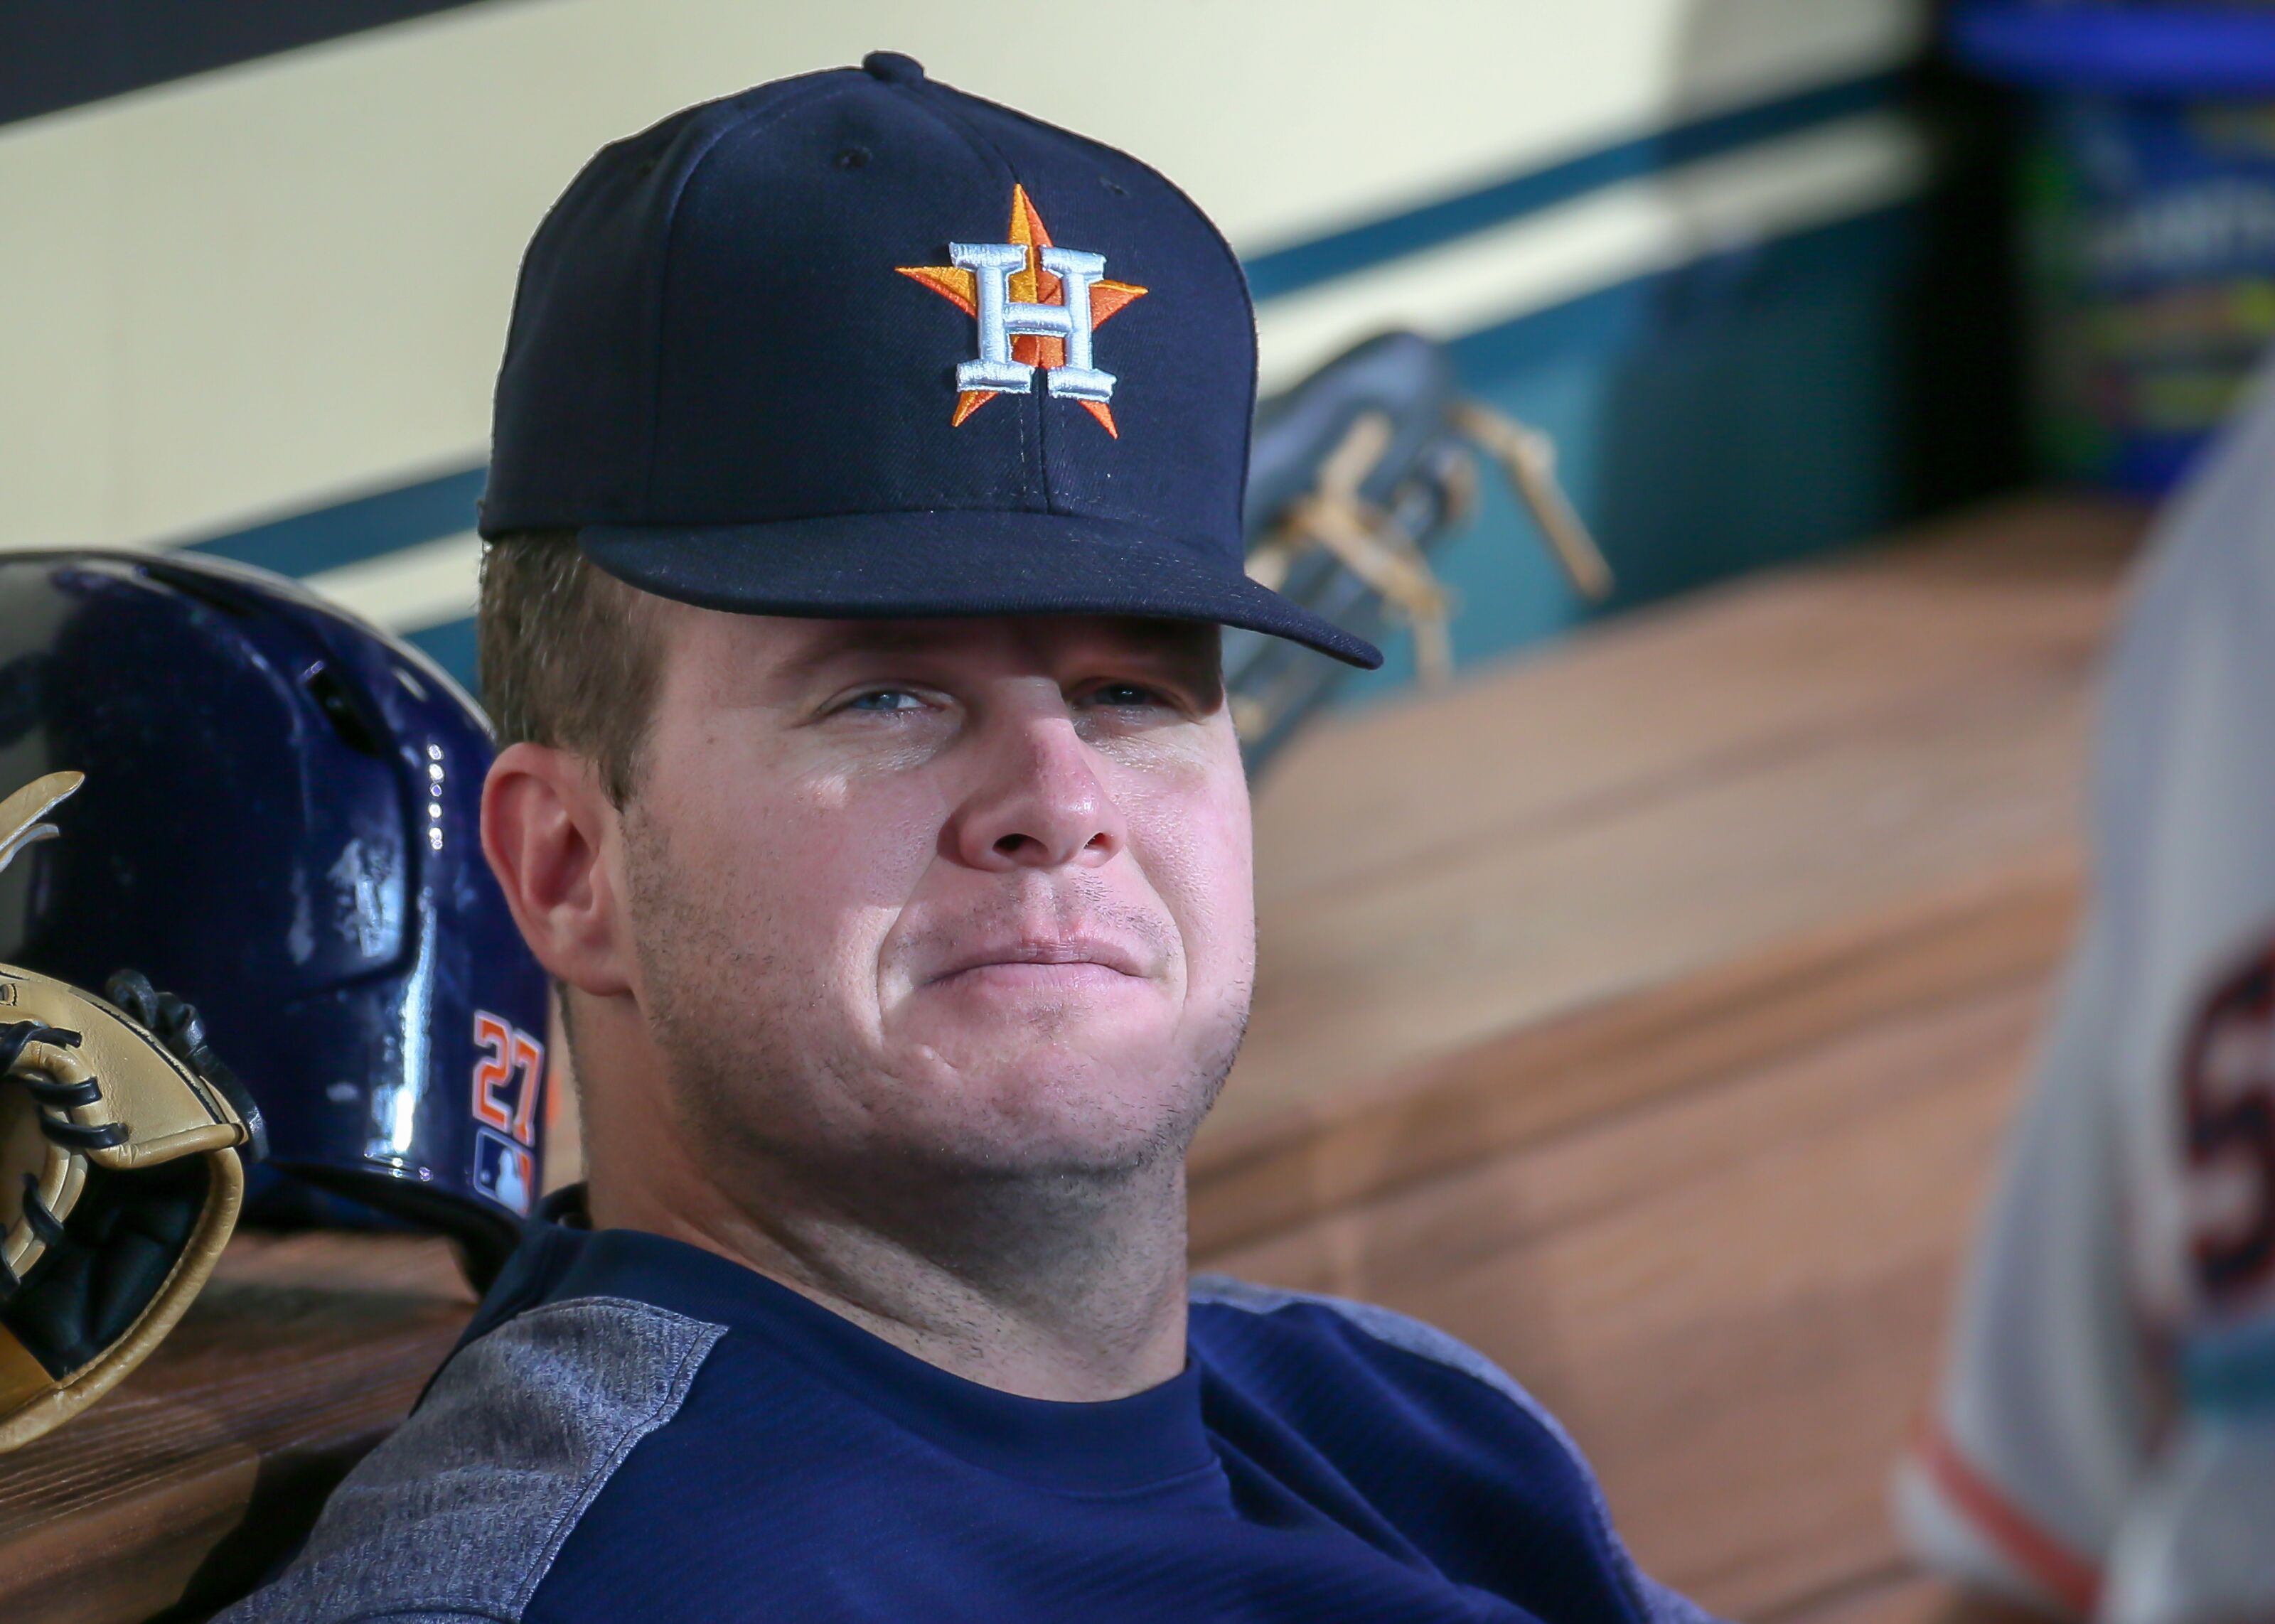 Houston Astros: Brad Peacock's return to the bump will be delayed